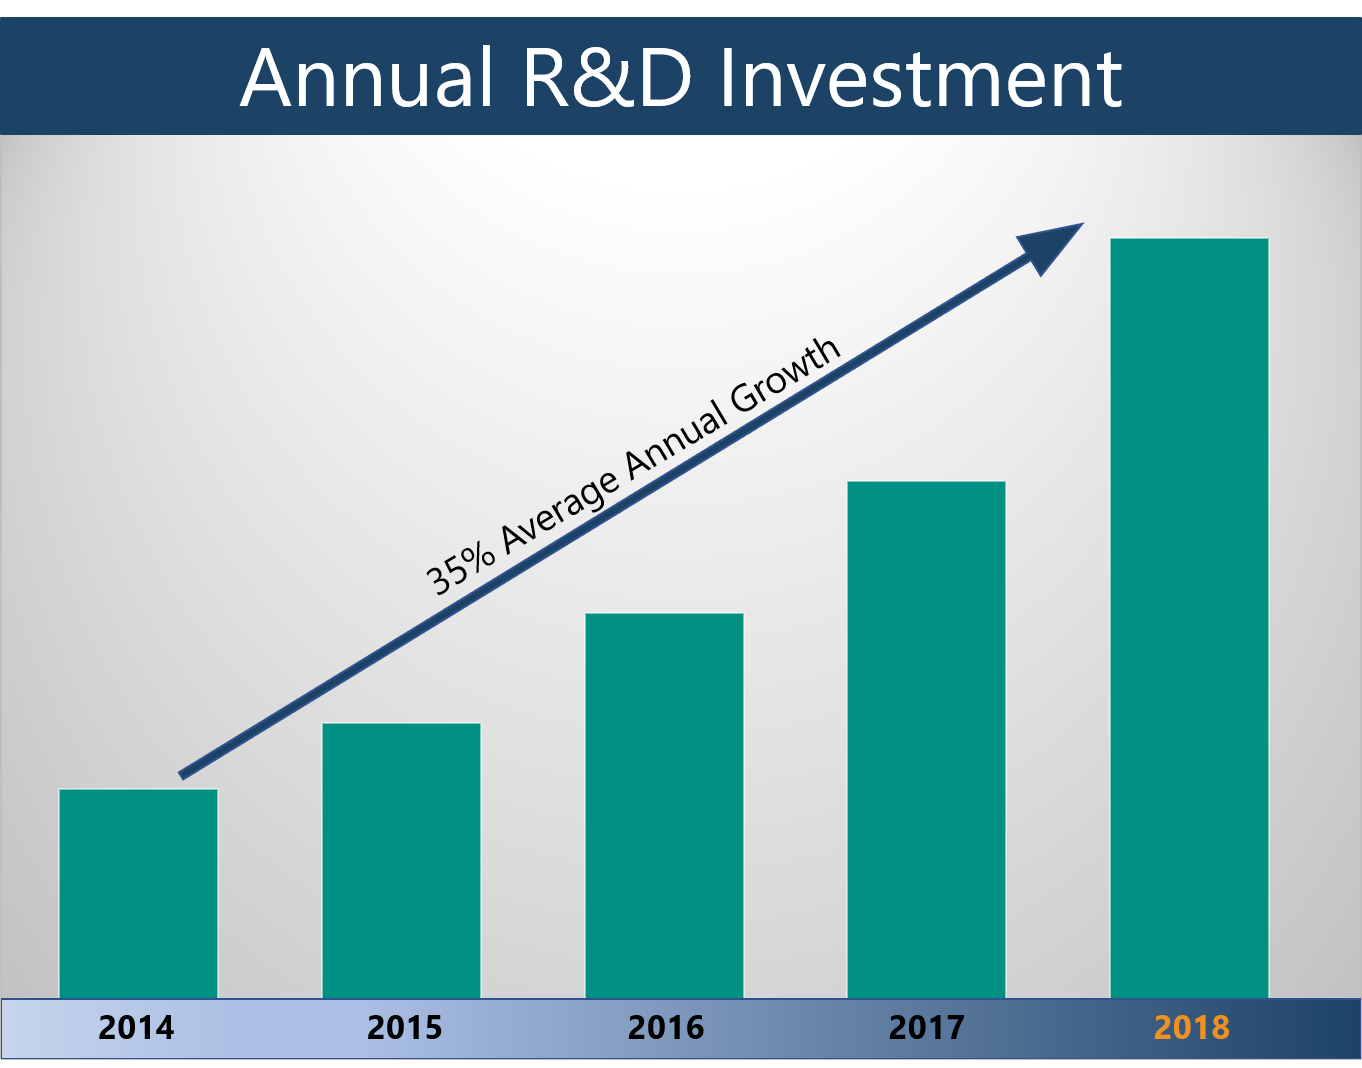 * 10% of revenue is invested into R&D and has grown at an average of 35% per year